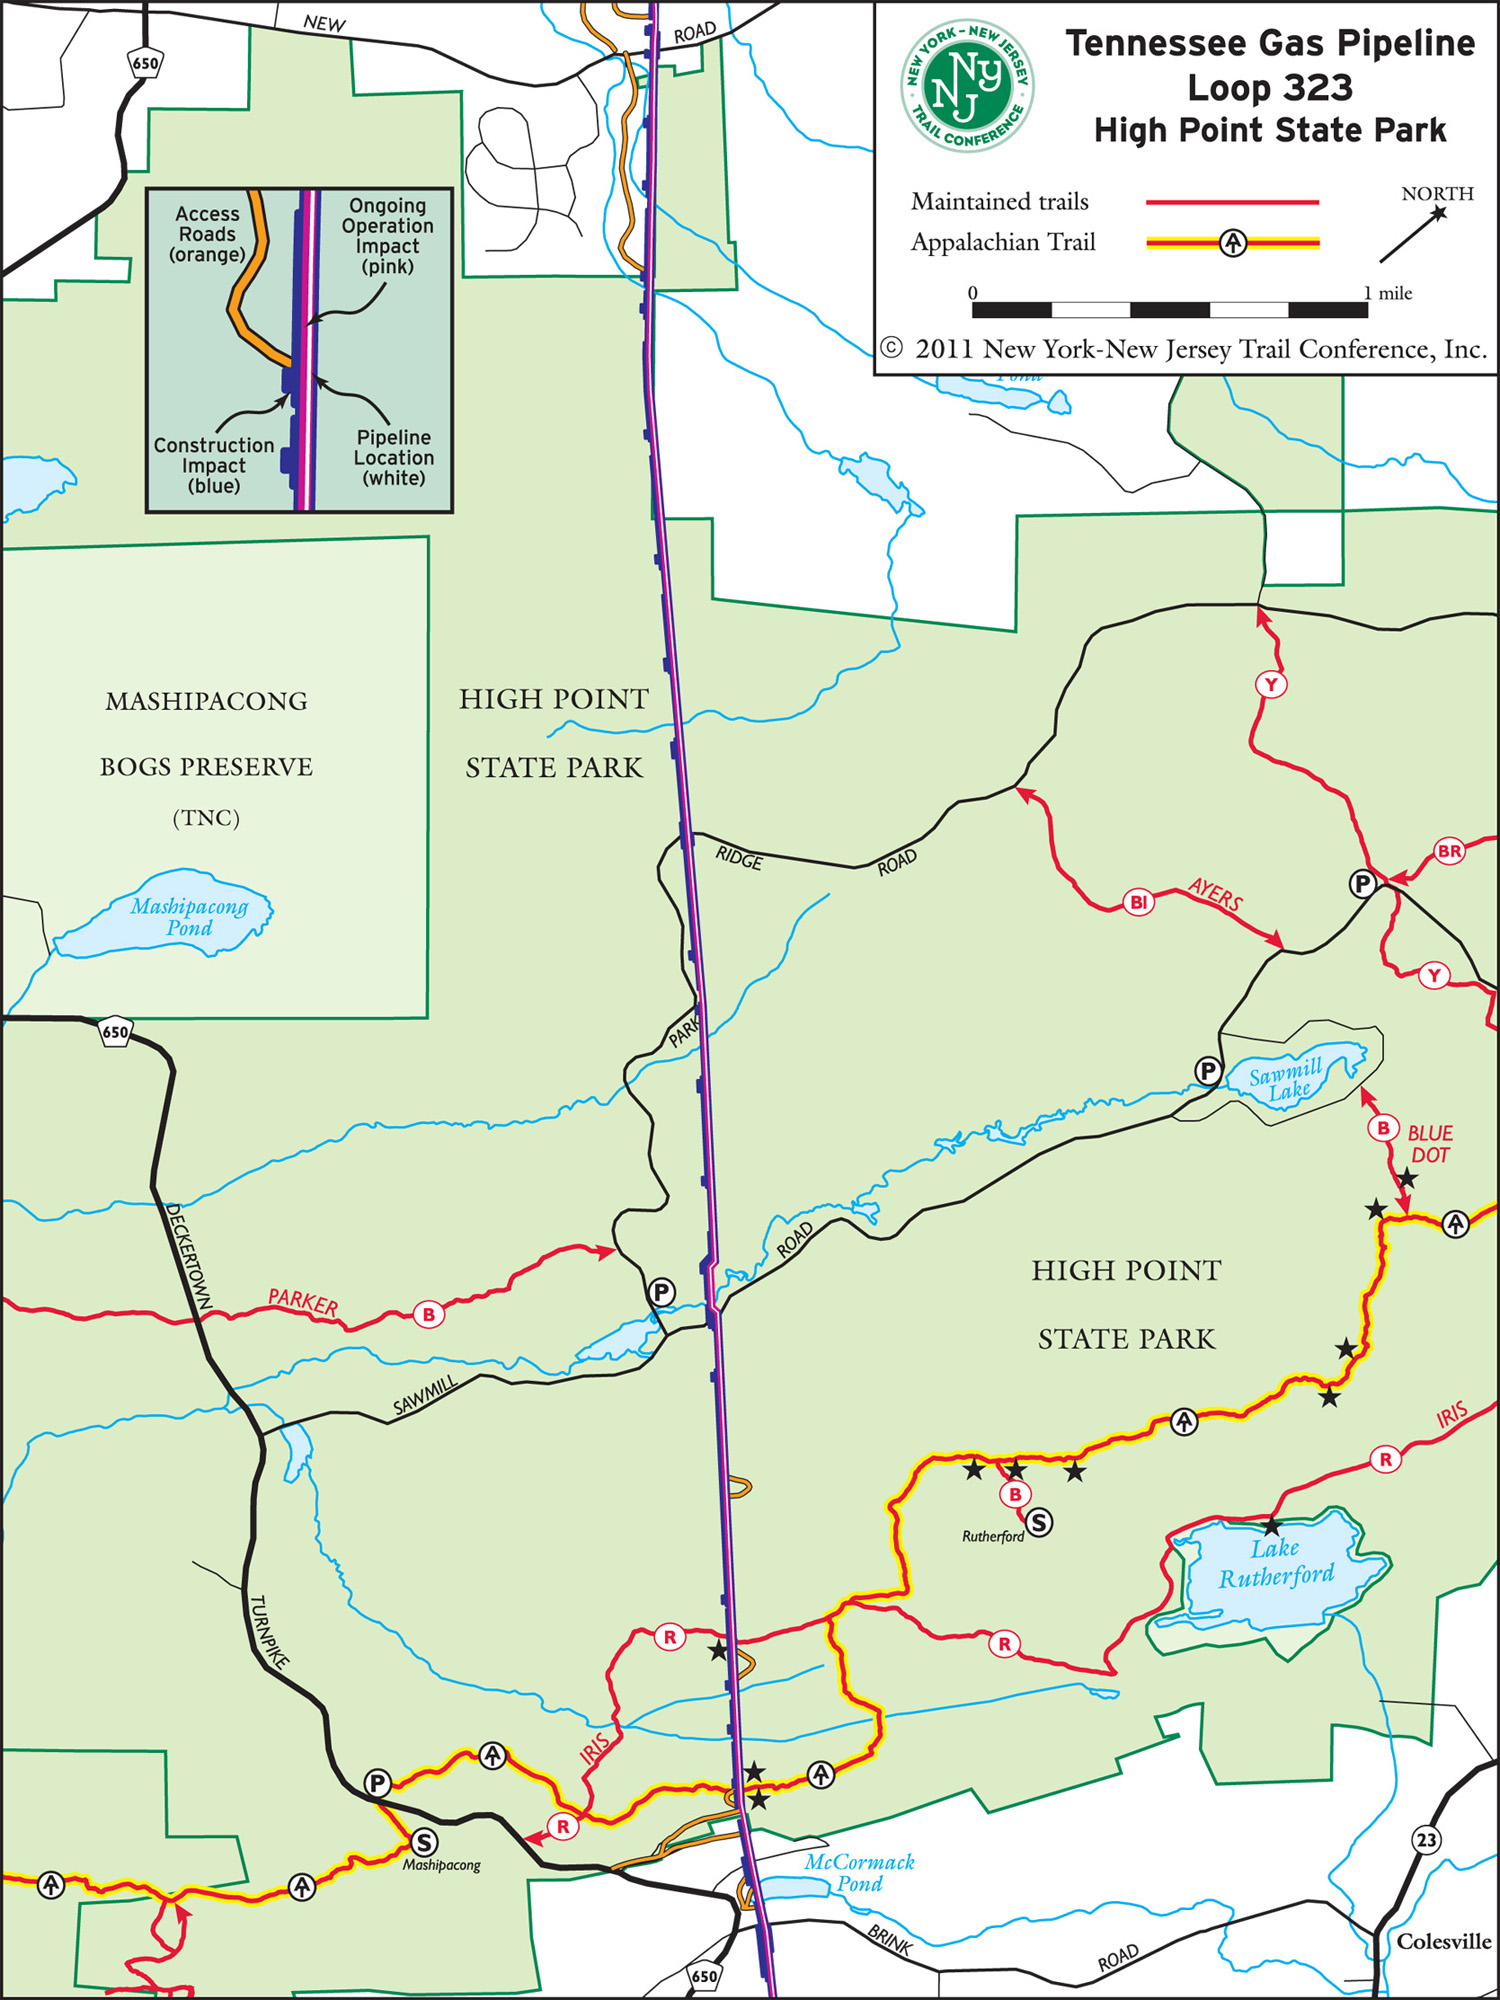 Tennesee Gas Pipeline in Northern New Jersey | New York-New Jersey Trail Conference